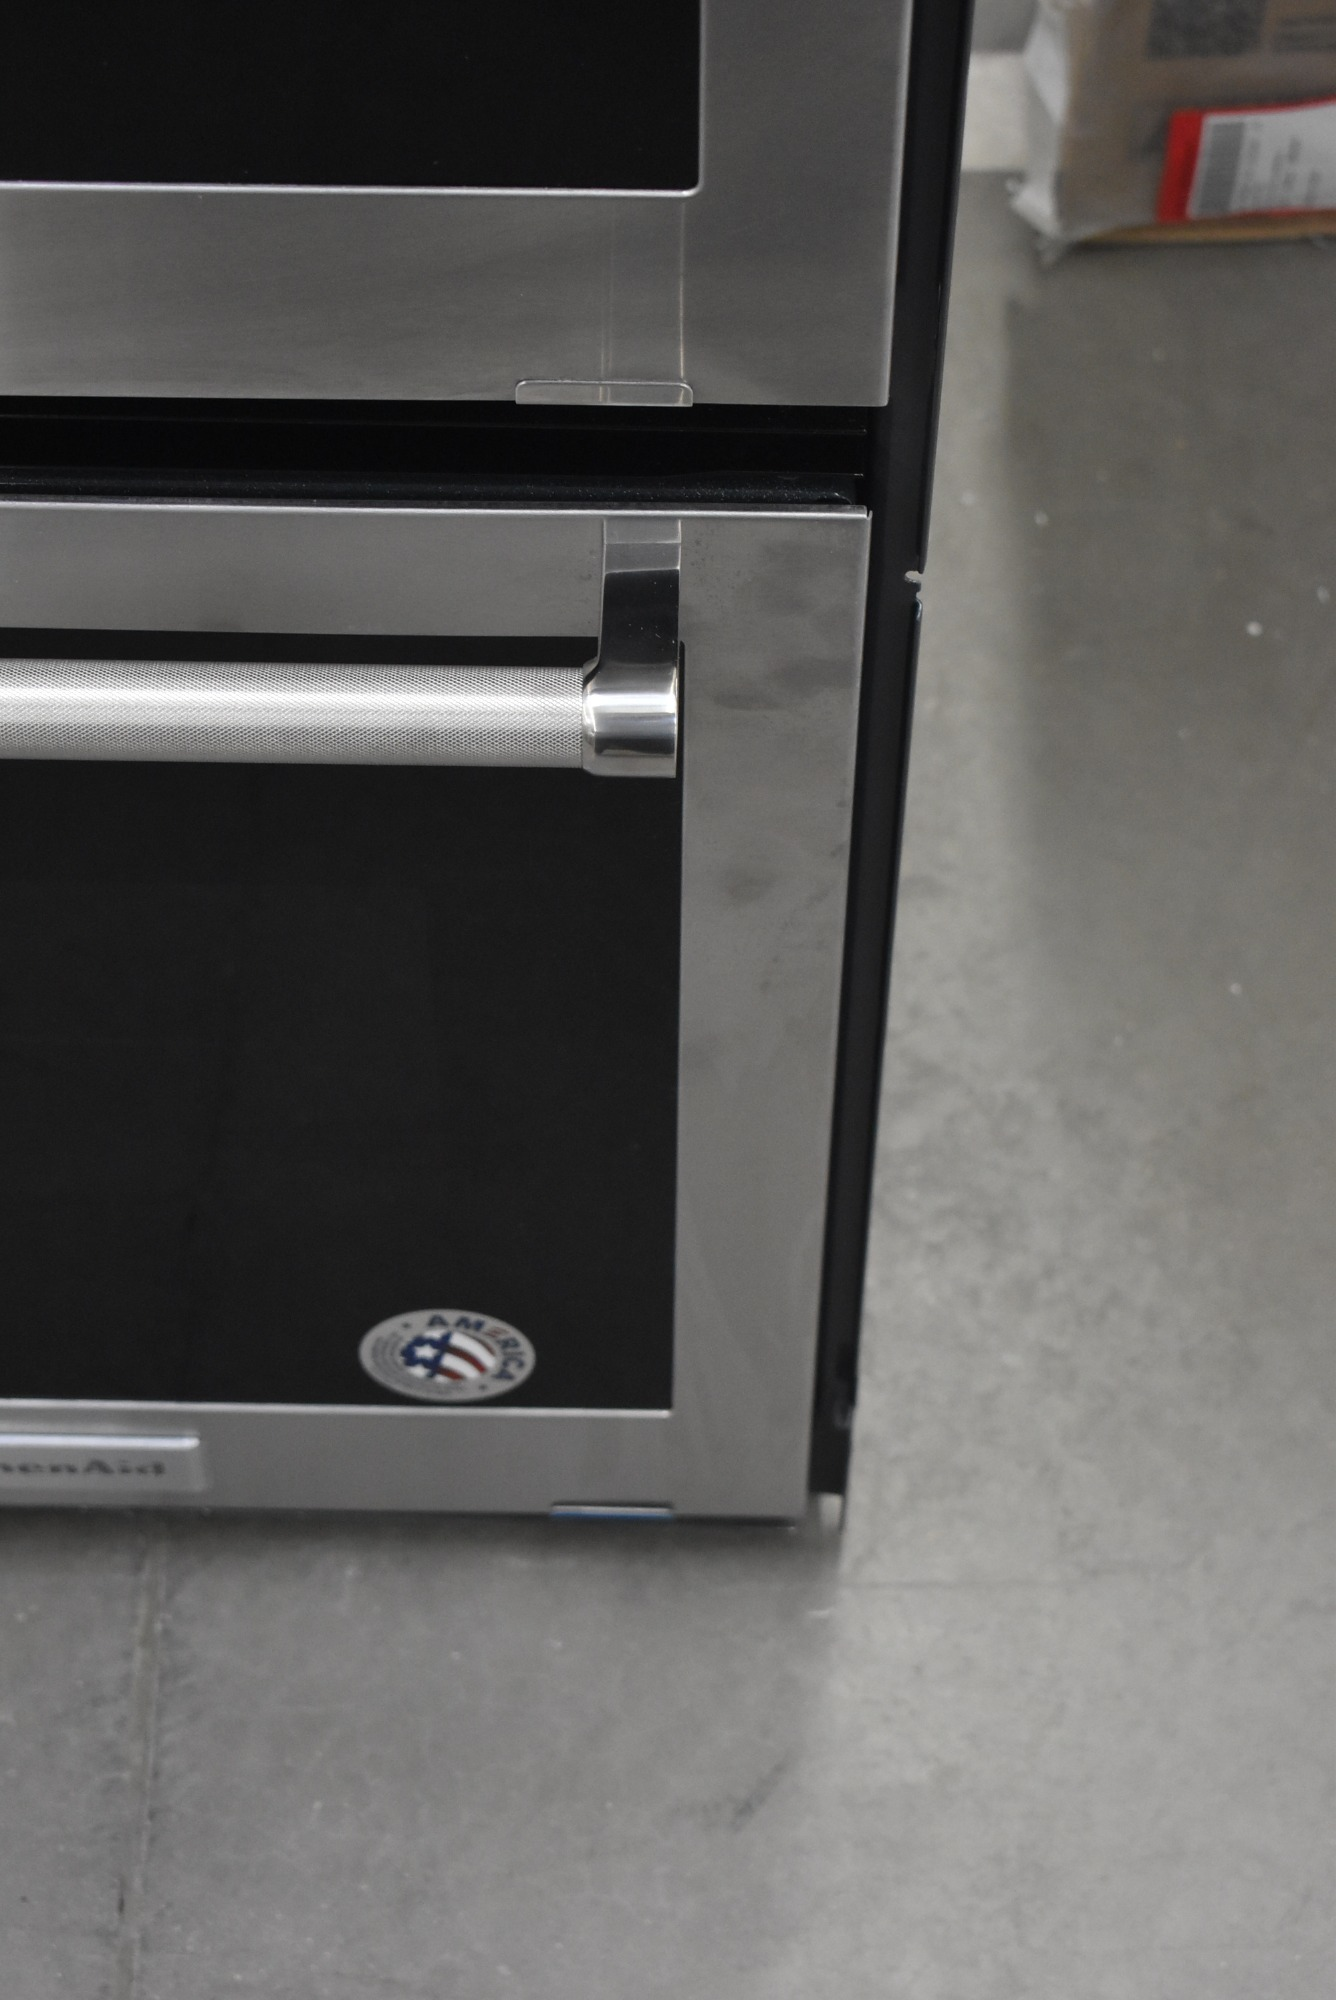 Kodc304ess Kodc304ess 24 Stainless Double Convection Wall Oven Kitchen Aid Kodc304ess Kodc304ess Combination Microwave Wall Ovens